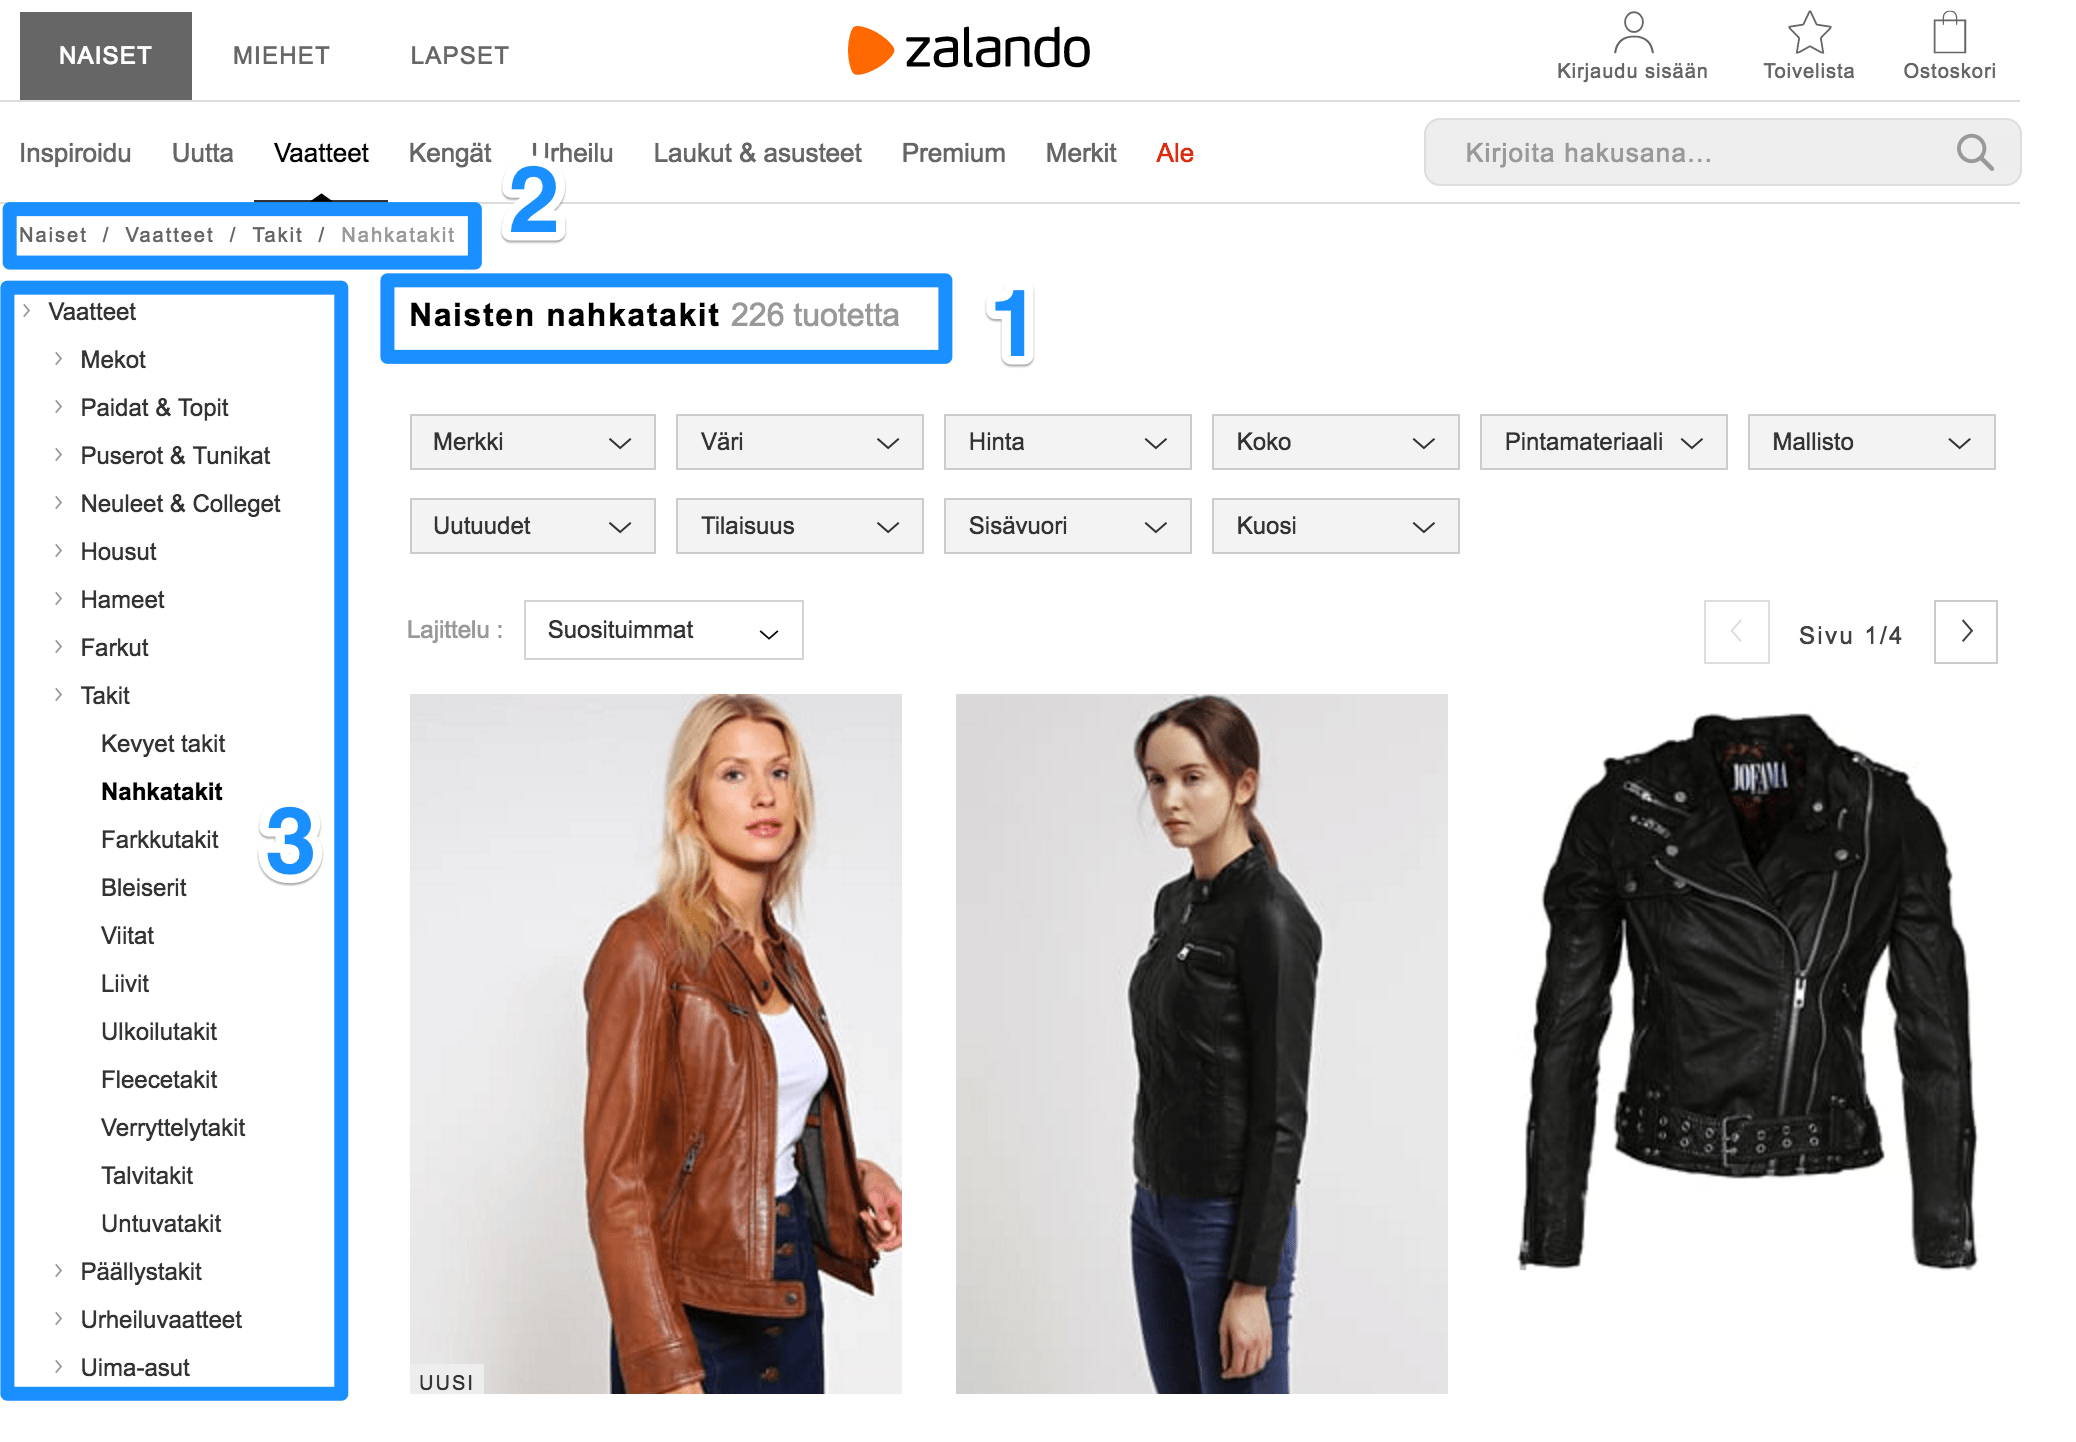 Top of Zalando's product listing page